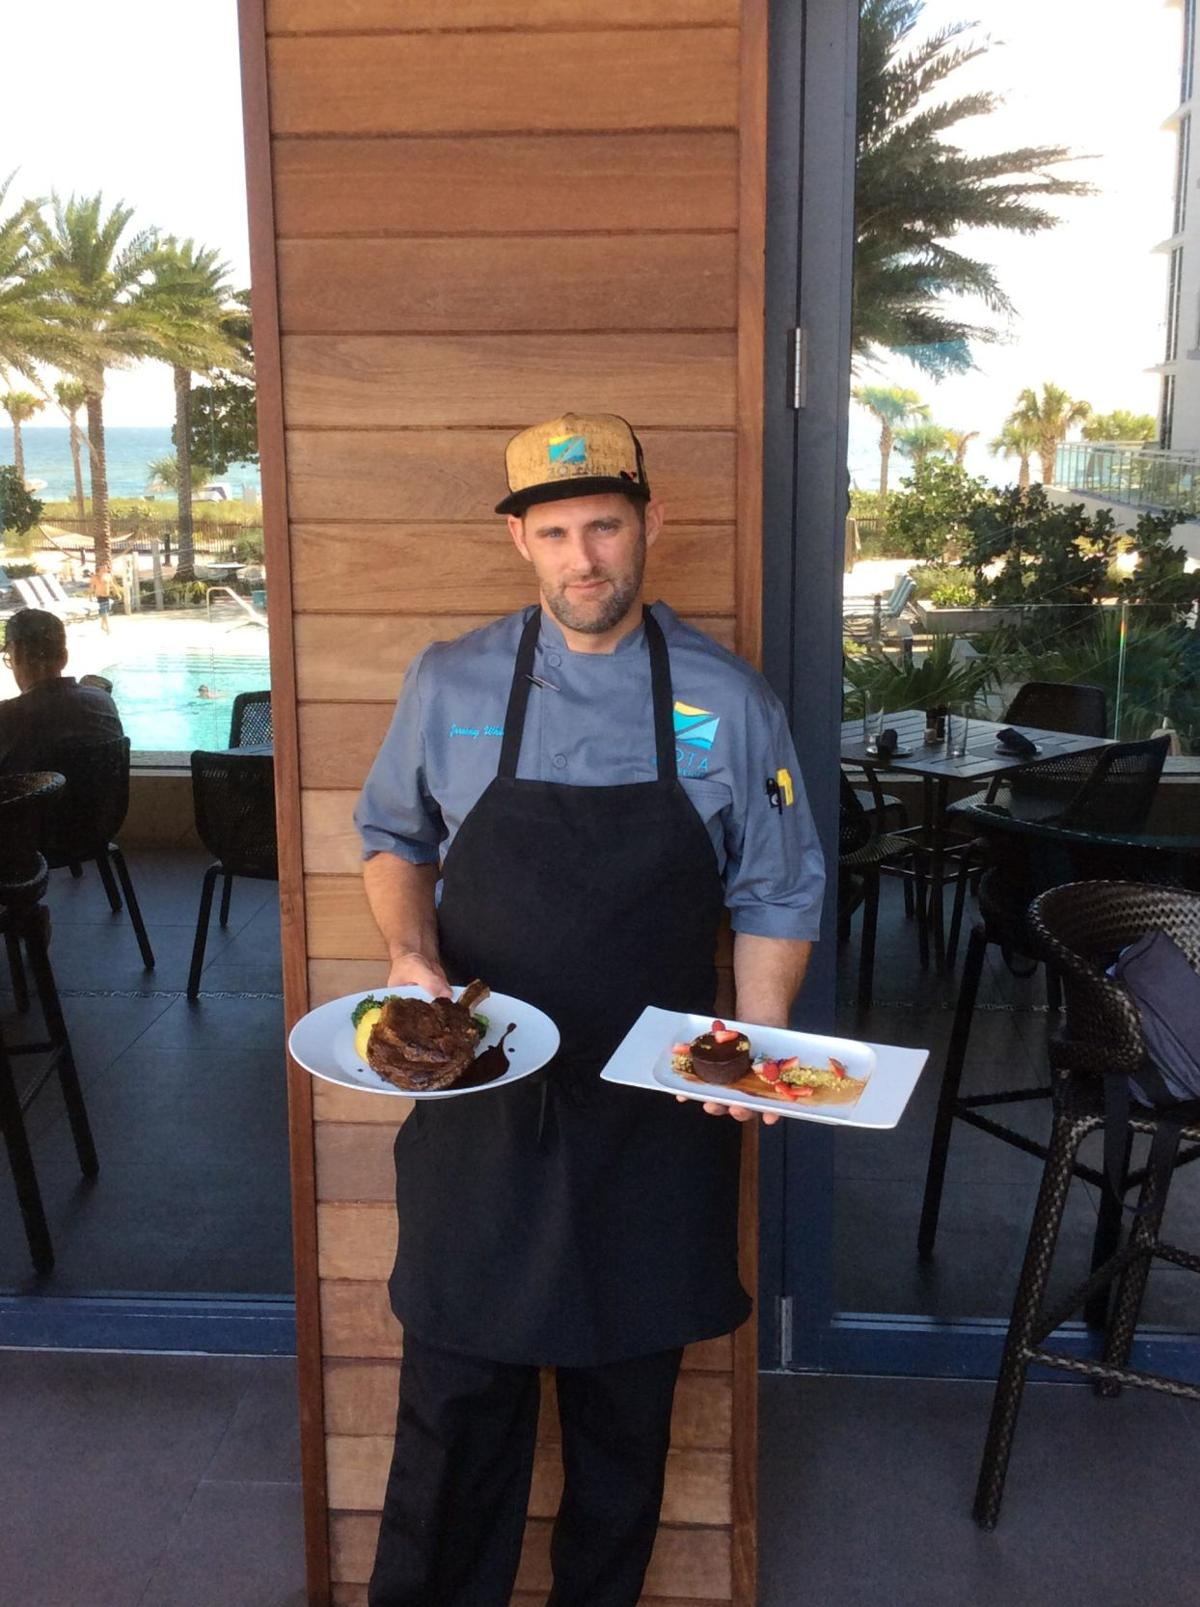 Stephen Fries: Now's the perfect time to experience the flavors of a Florida oasis